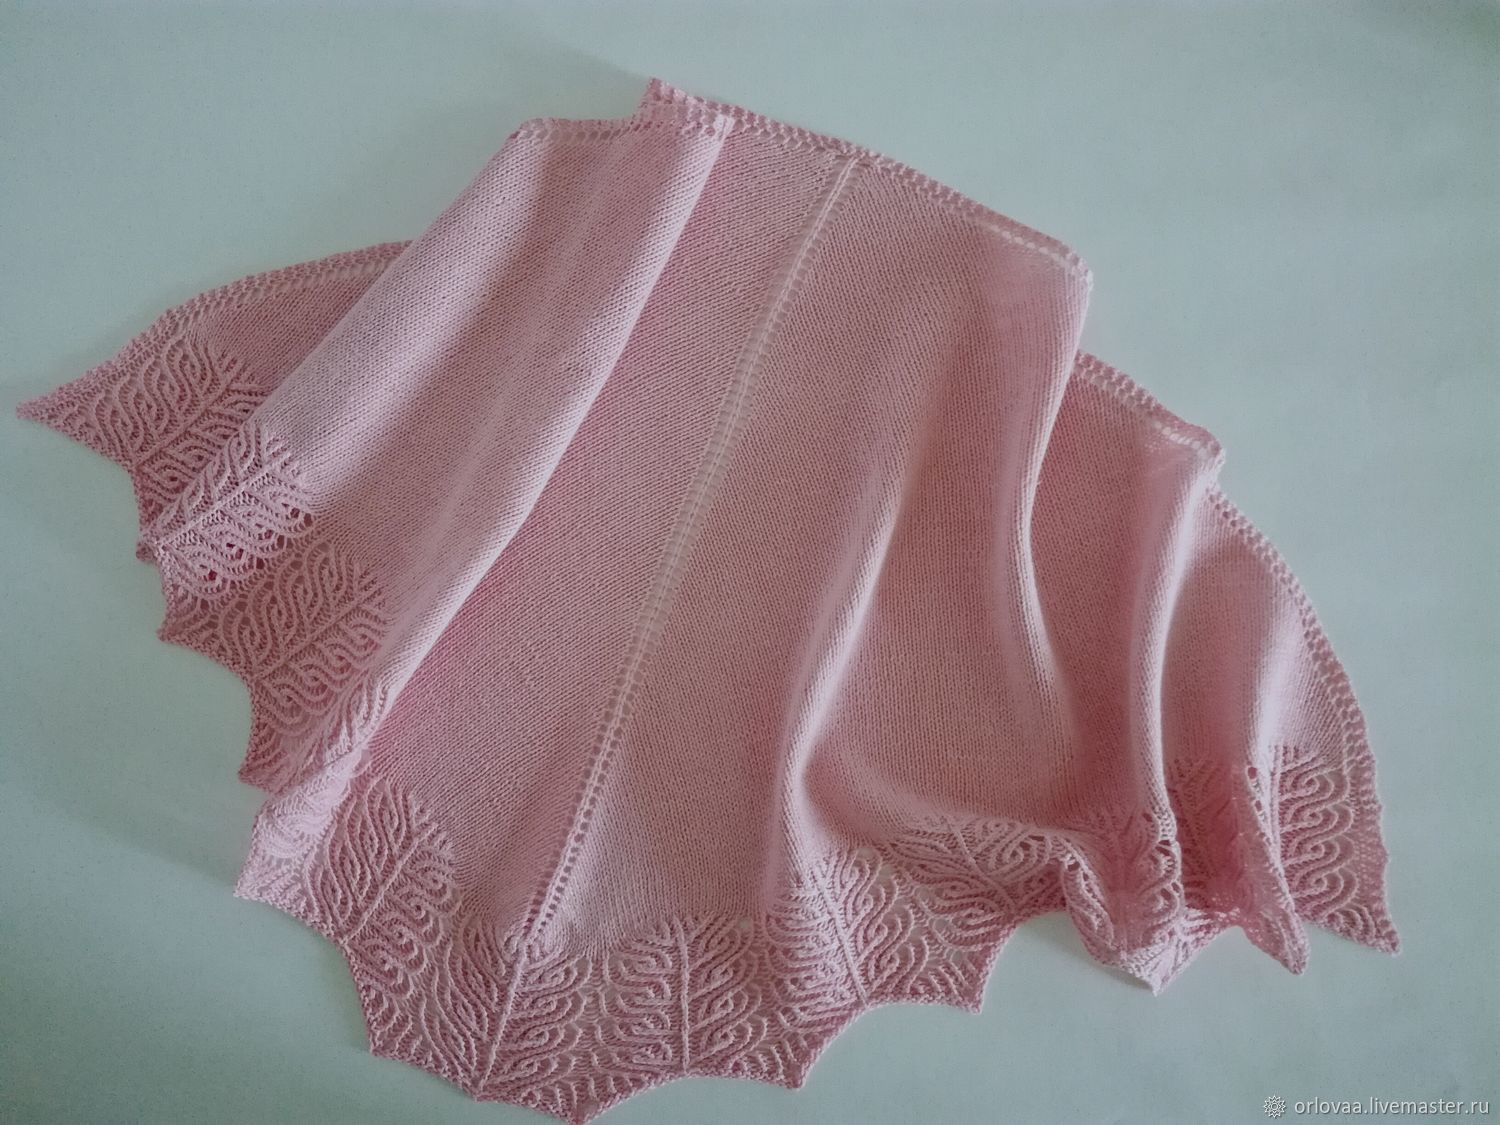 Shawl made of cotton linen and bamboo ' light pink', Shawls, Moscow,  Фото №1